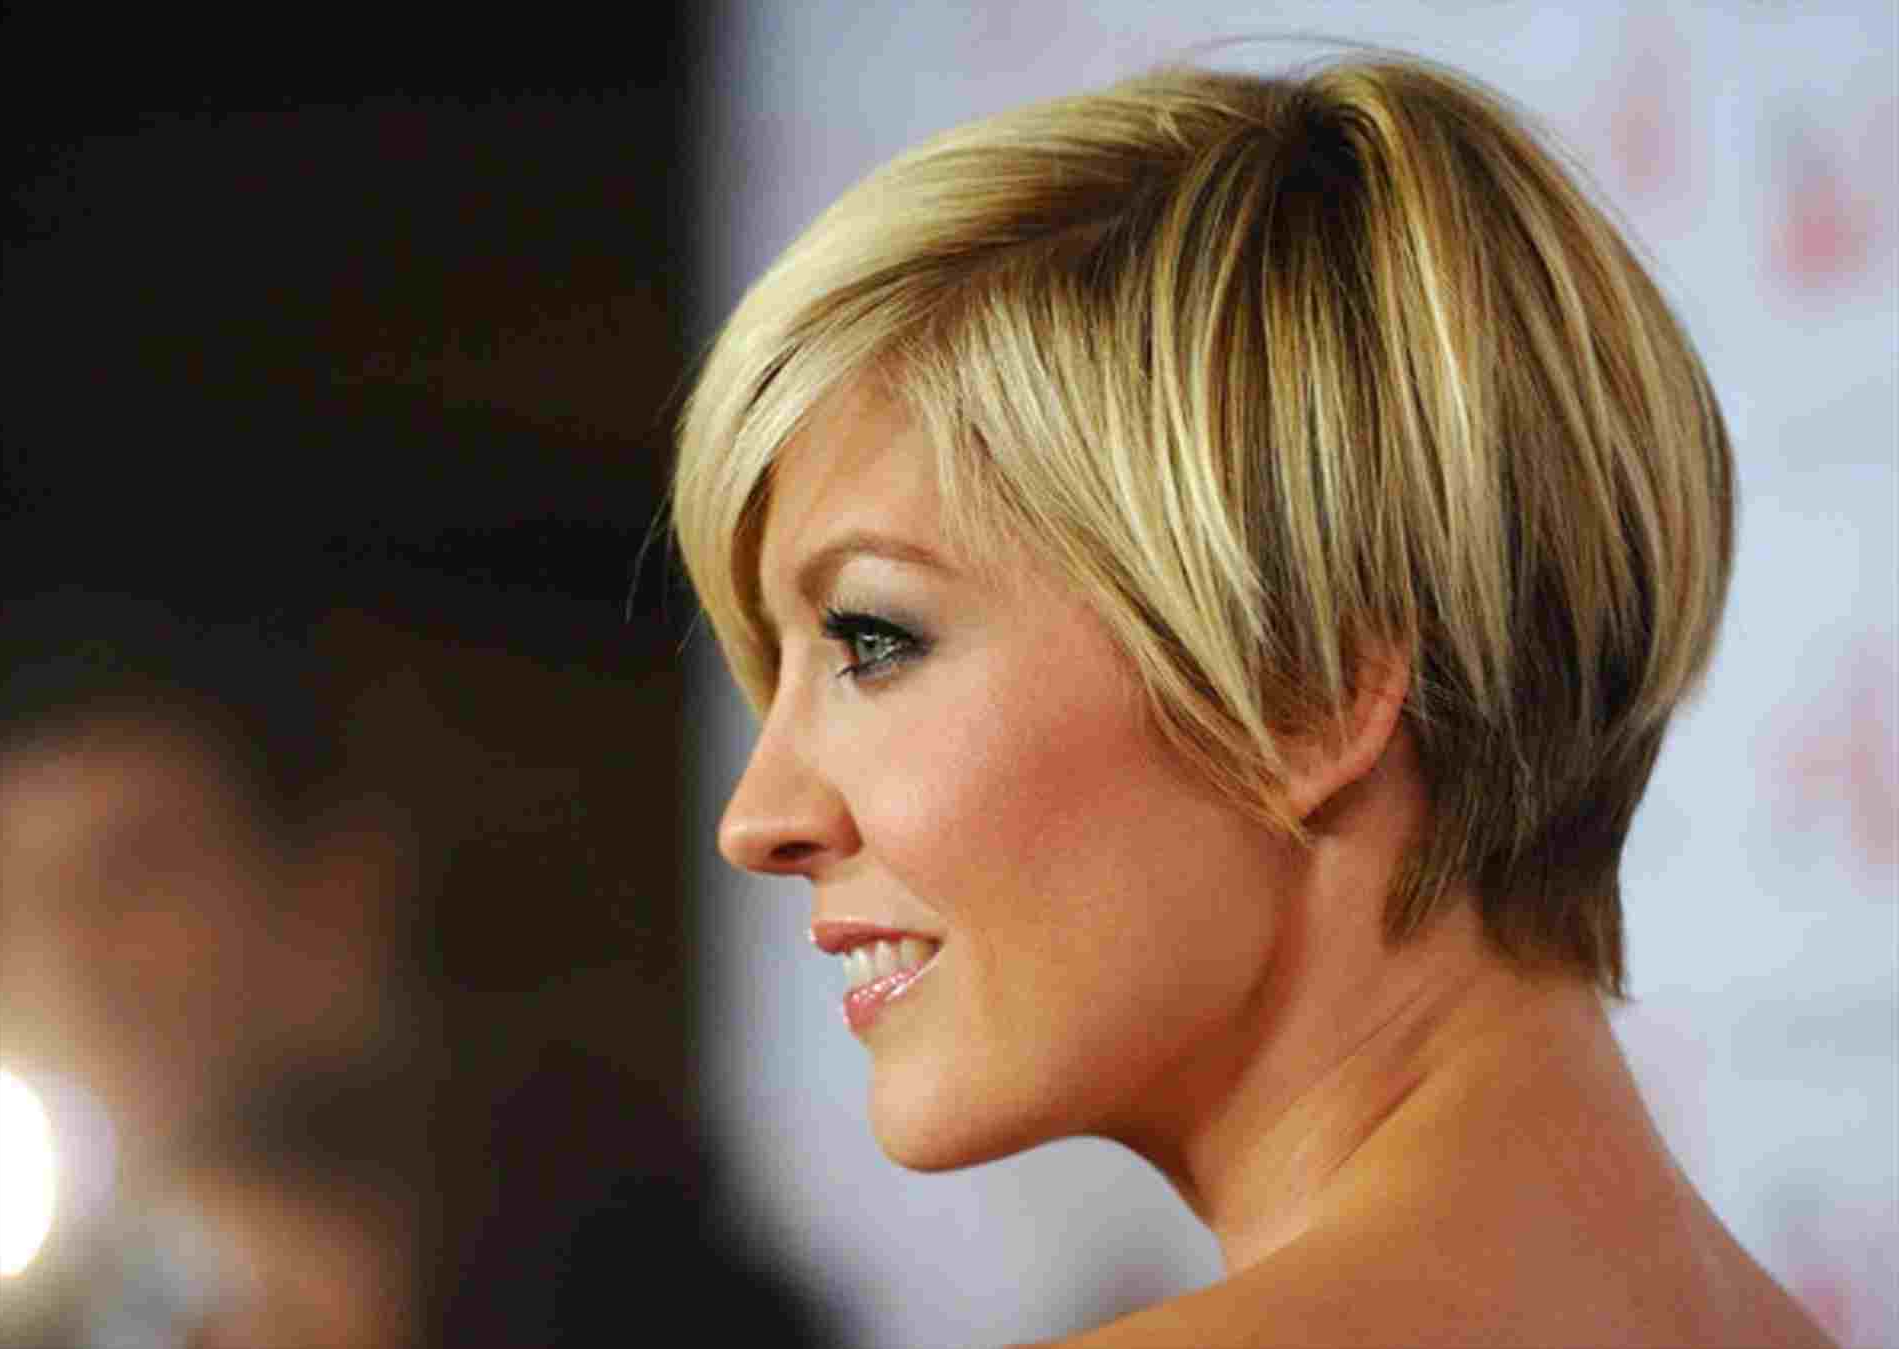 Hairstyles For Fat Women Over 40 Trend Hairstyle And Haircut For Short Hairstyles For Women Over 40 With Thin Hair (View 20 of 25)